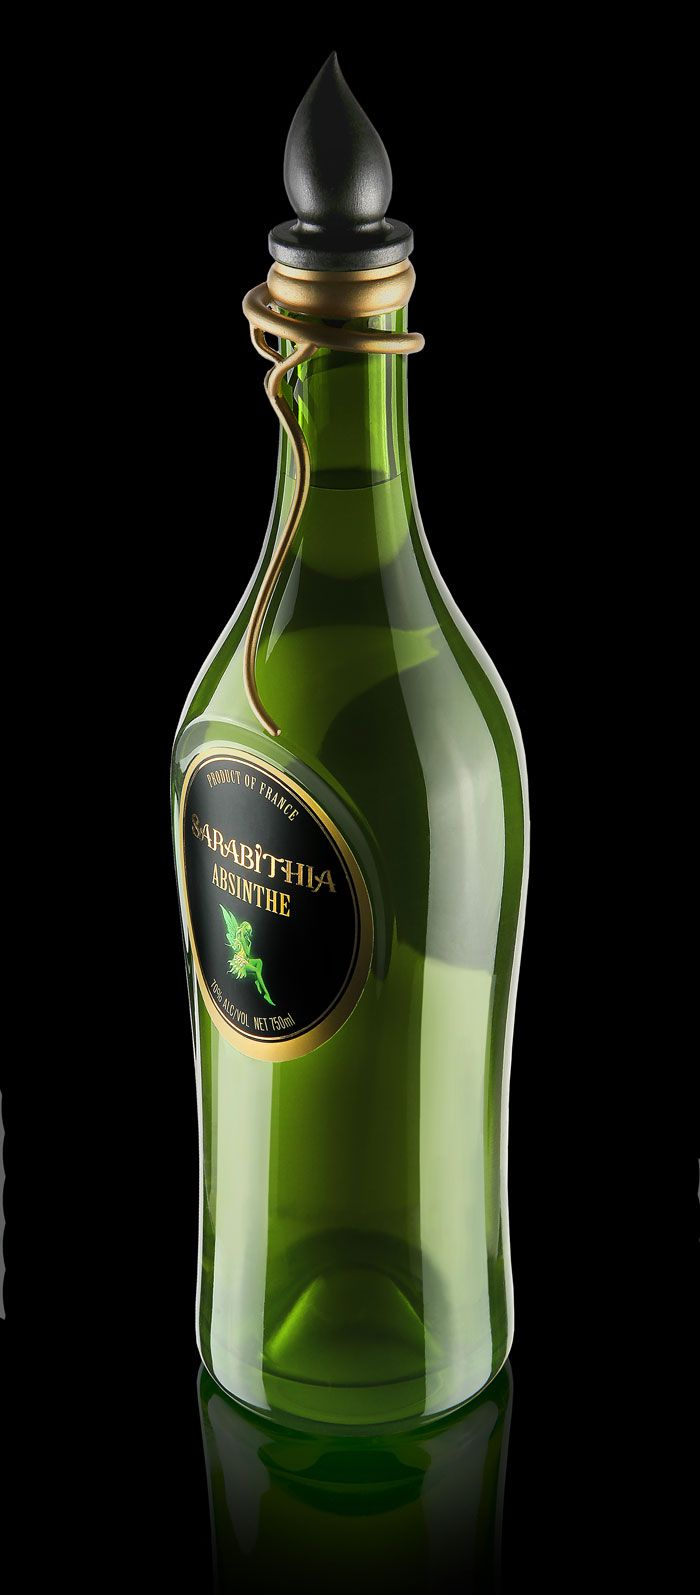 17 Best images about Absinthe the Green Fairy on Pinterest